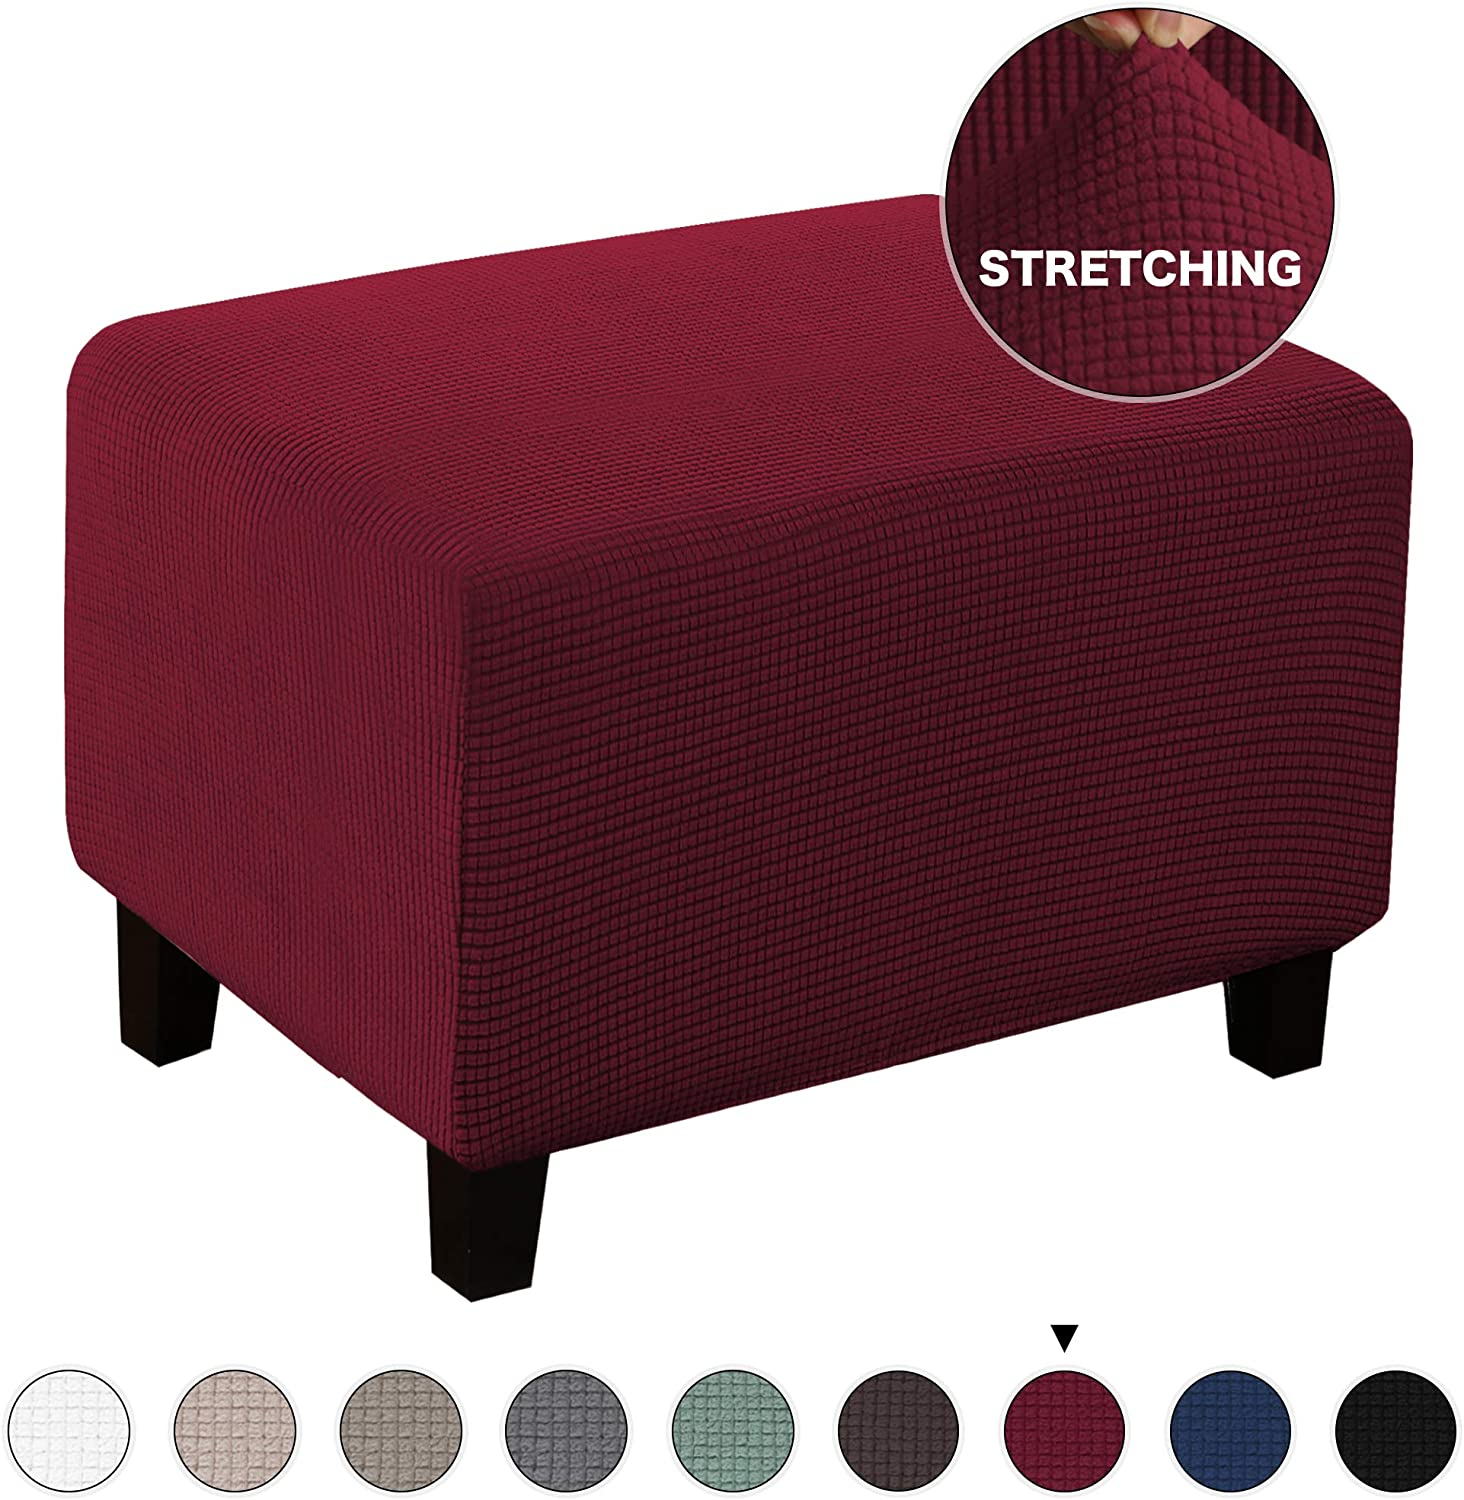 Ottoman Slipcover Stretch Rectangle Storage Stool Ottoman Cover for Living Room Folding Storage Stool Furniture Protector Soft Rectangle slipcover with Elastic Bottom (Ottoman, Burgundy)